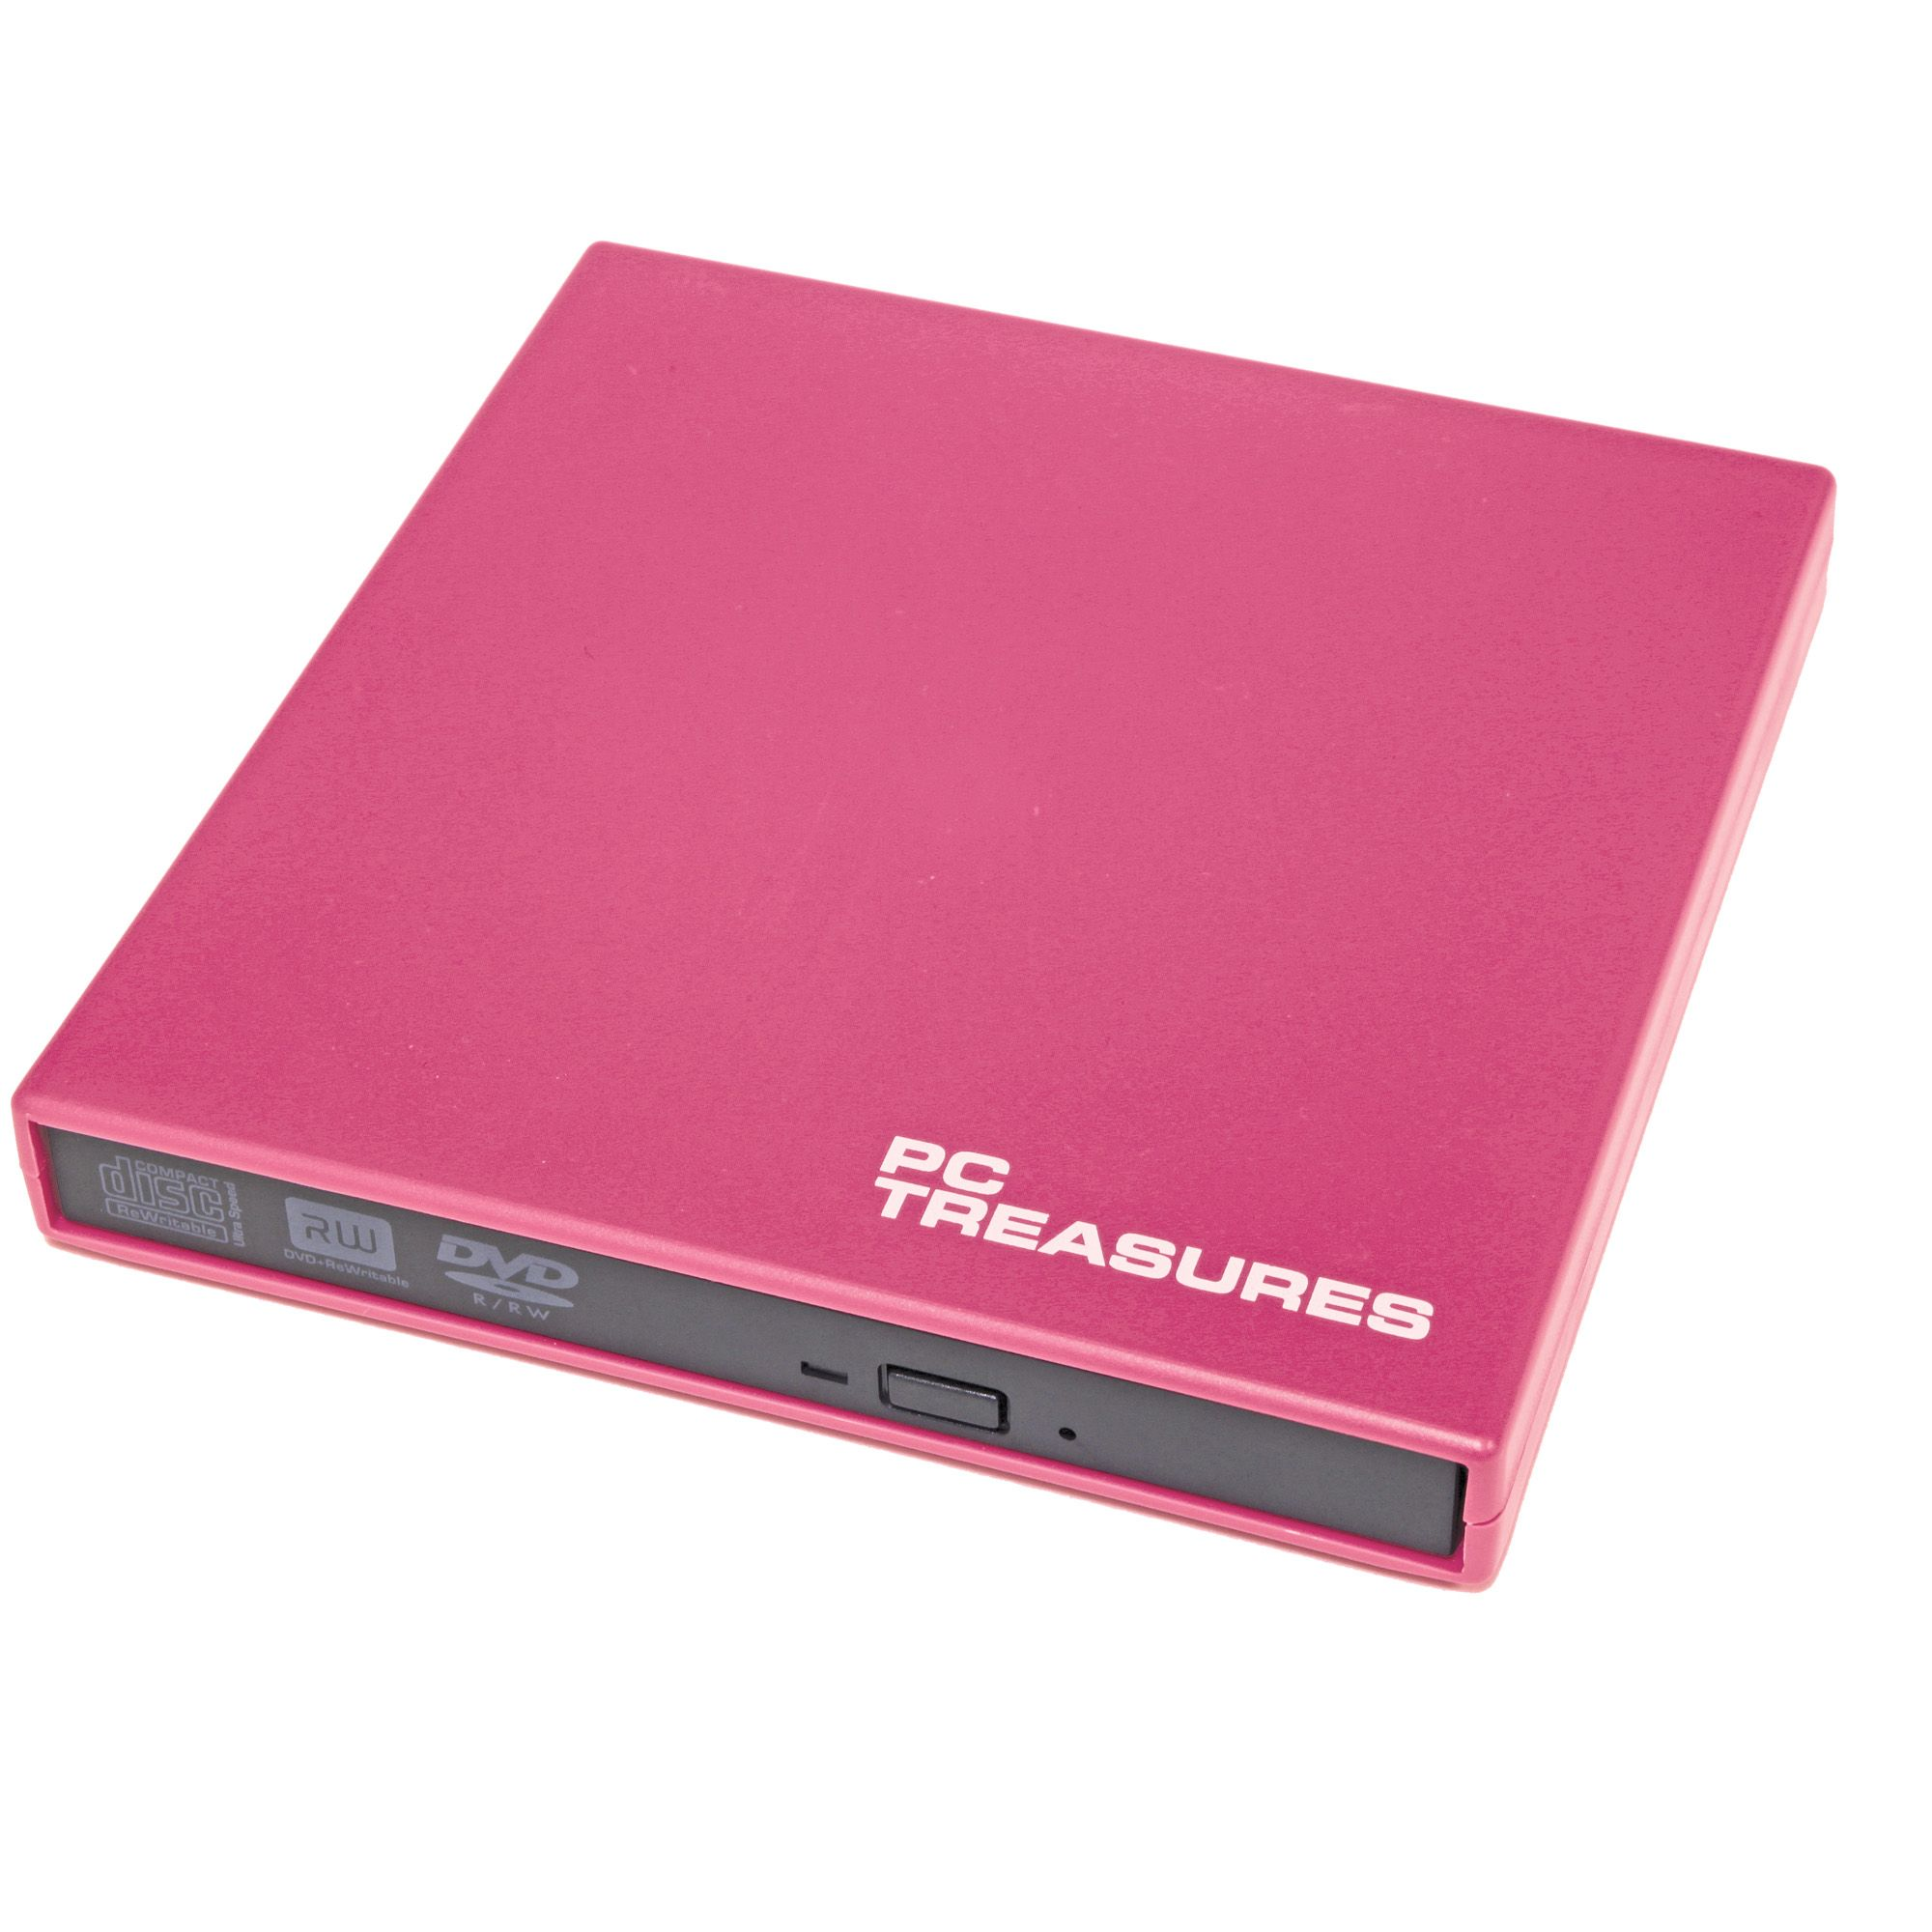 PC Treasures  External DVD/RW Drive pink